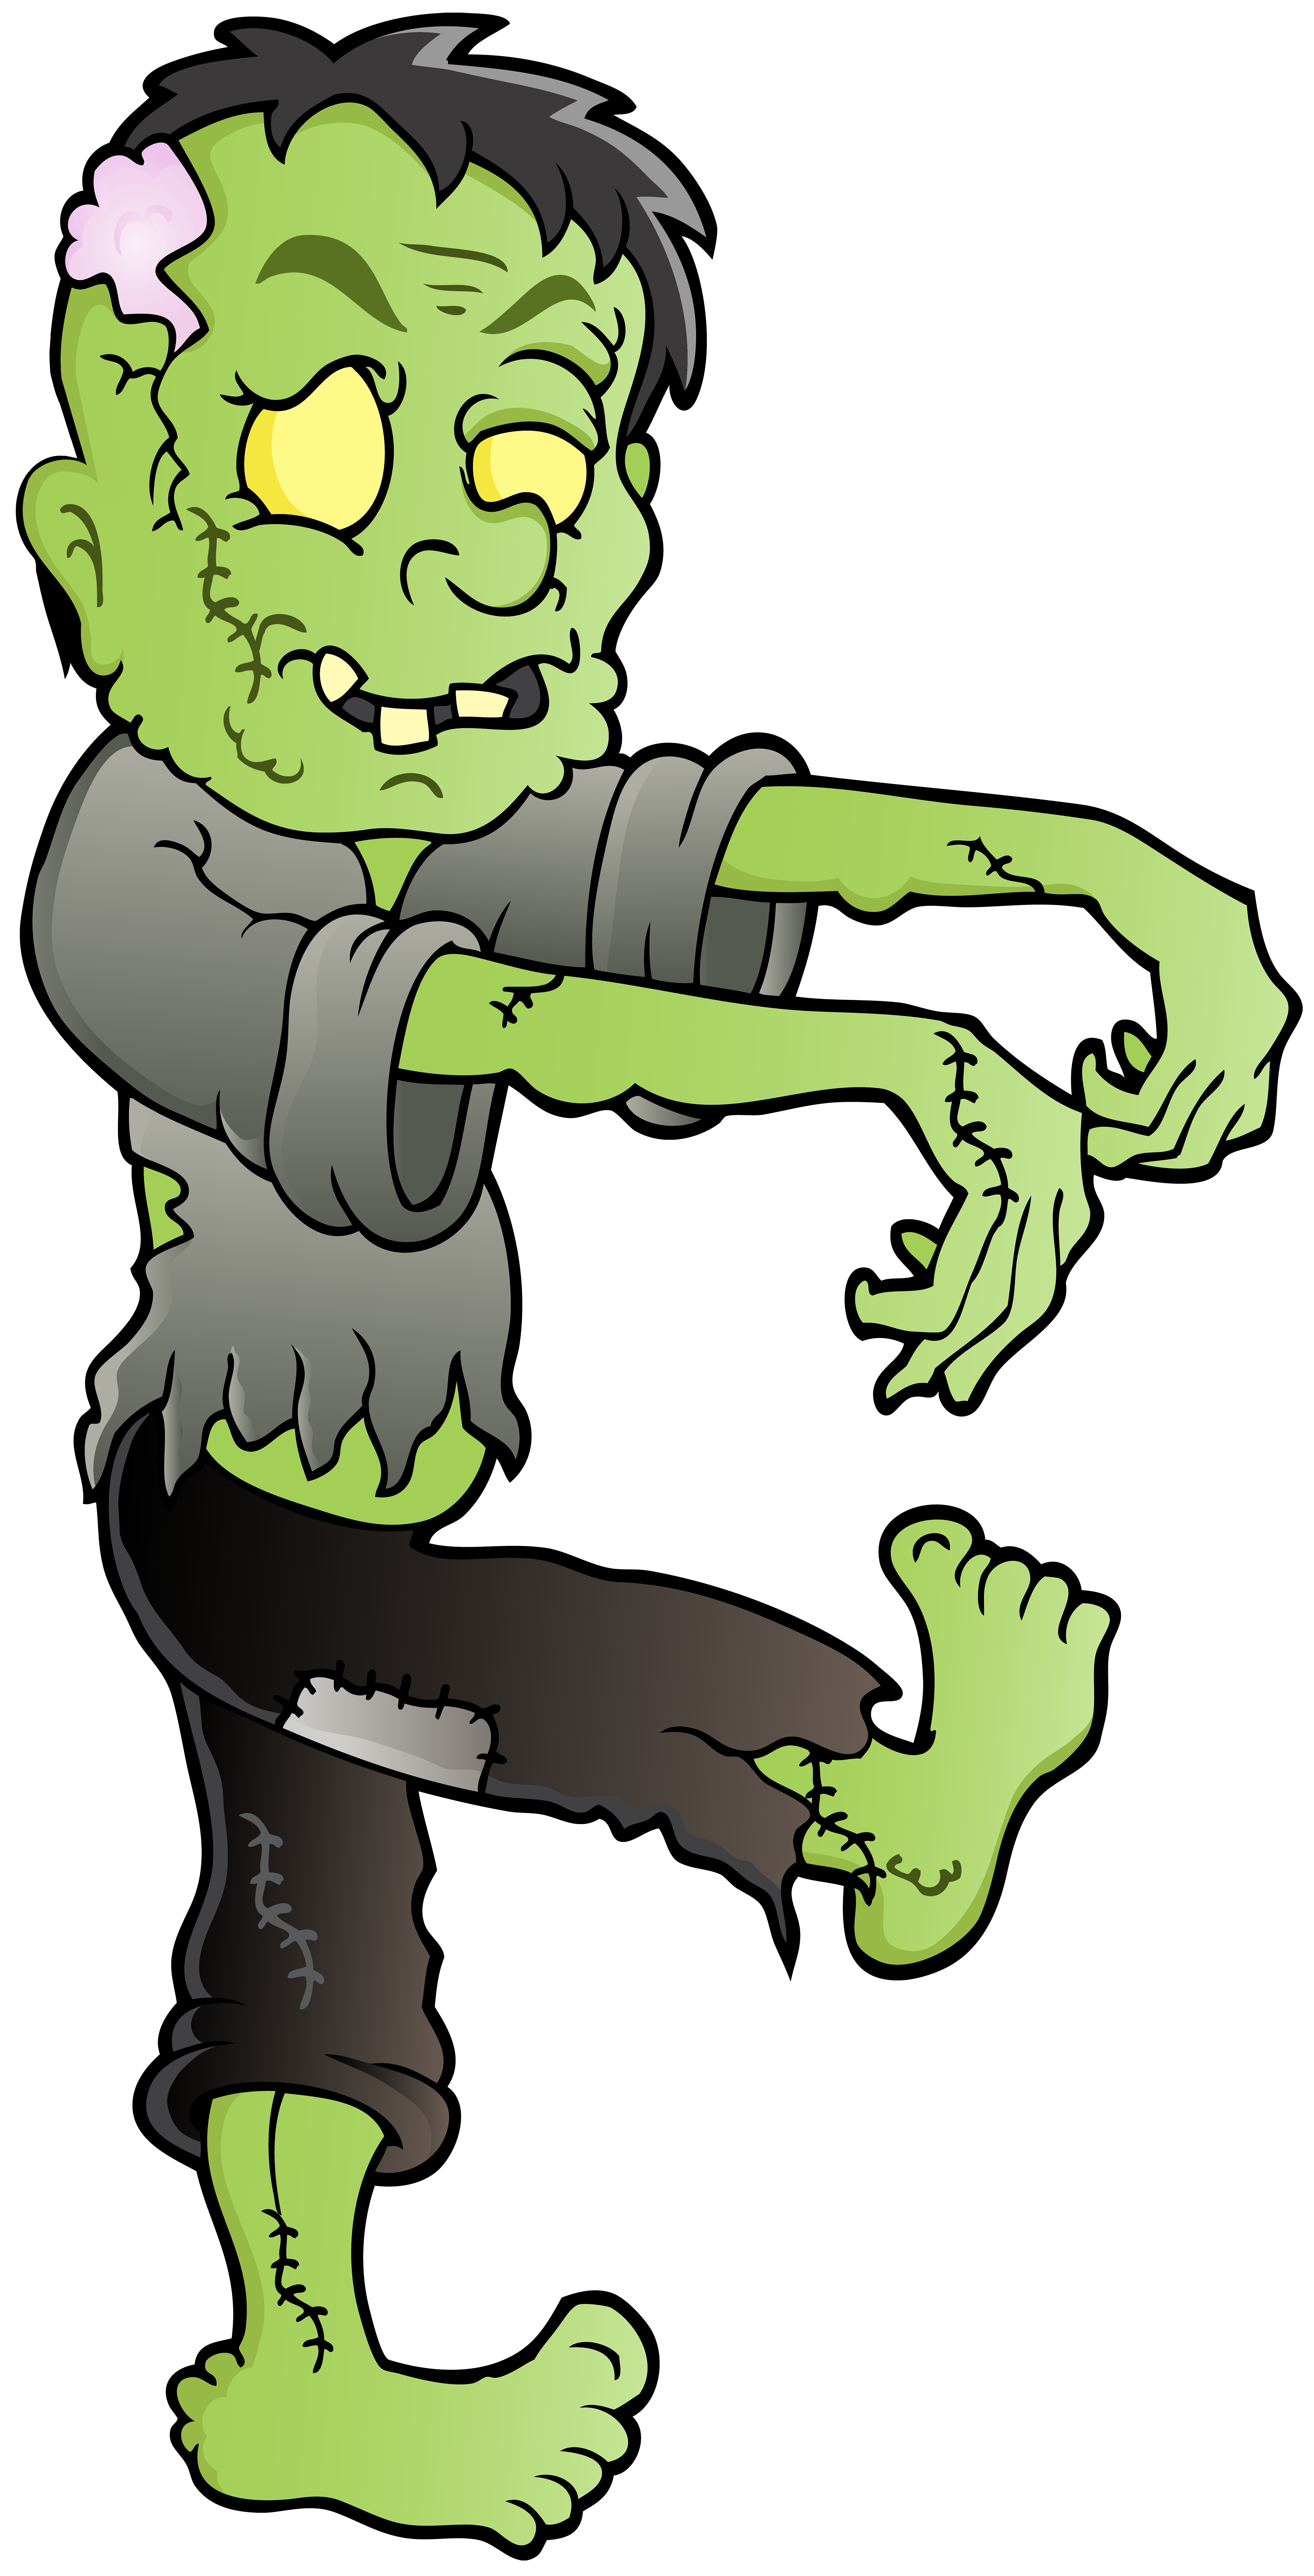 Zombie happy birthday clipart clip royalty free library Zombie PNG Clip Art Image | Gallery Yopriceville - High ... clip royalty free library